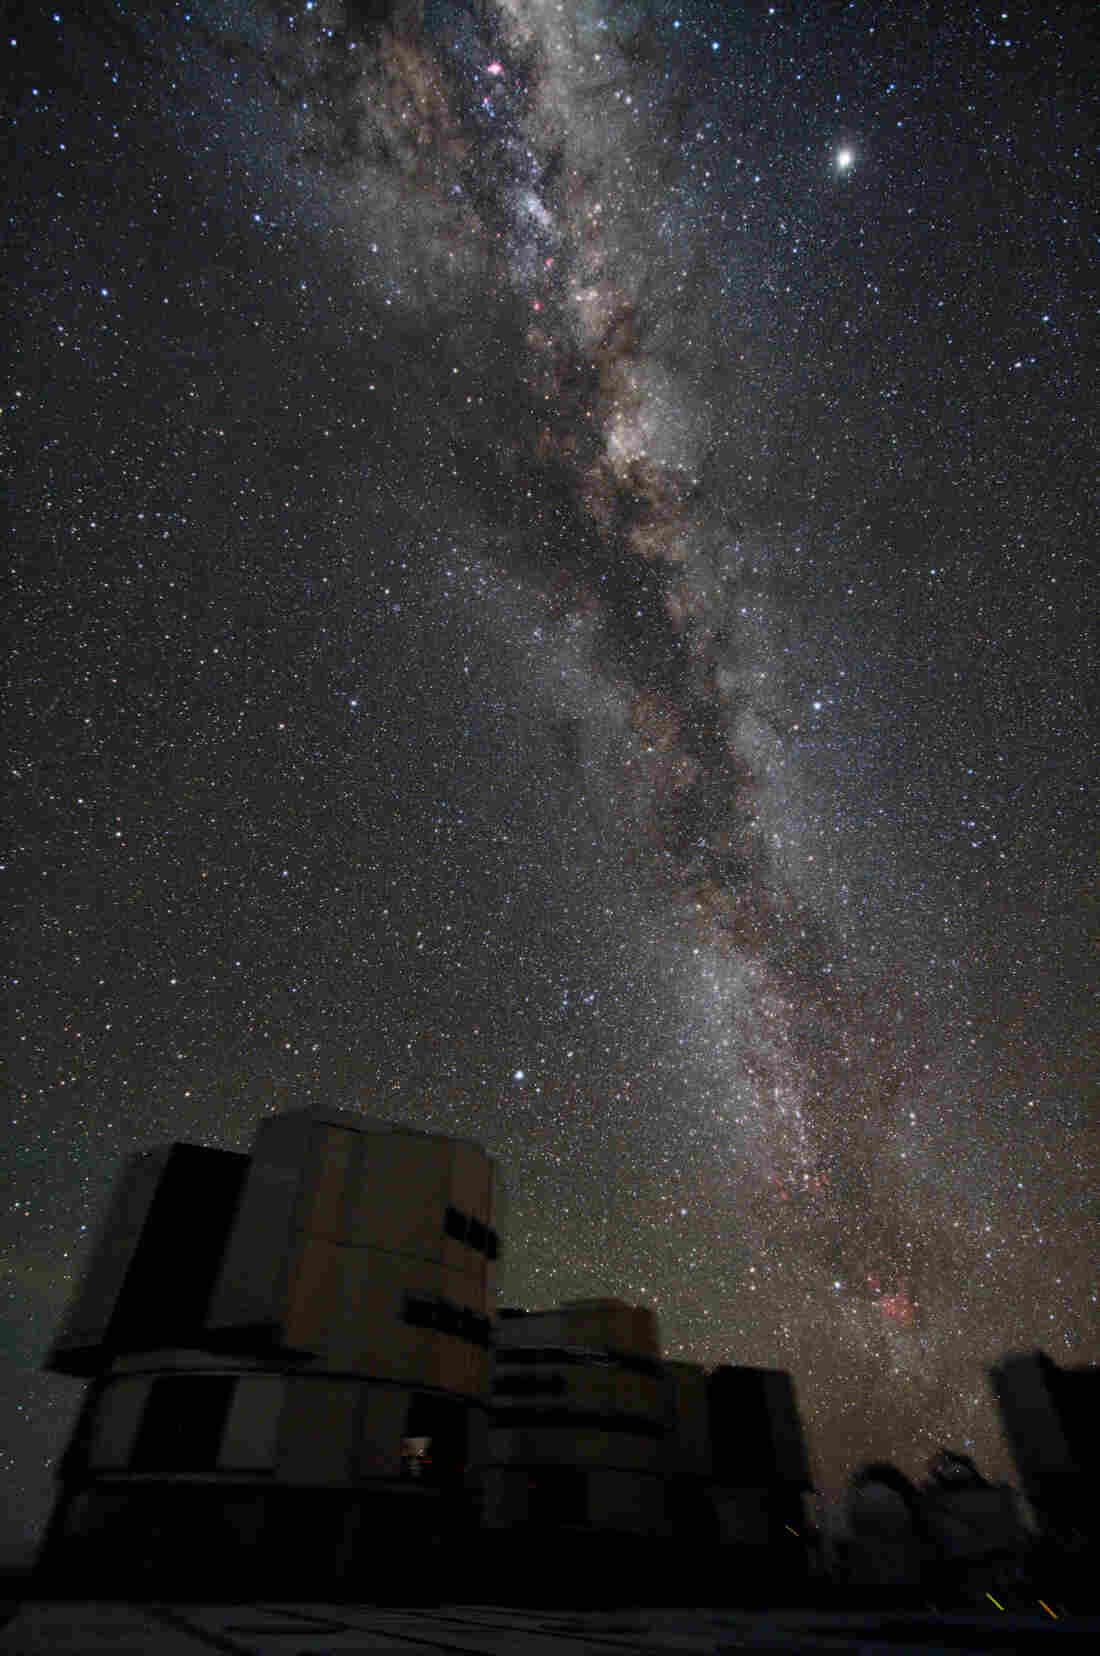 The Milky Way fills the night sky over Chile's Cerro Paranal, home to the European Southern Observatory's Very Large Telescope (VLT).